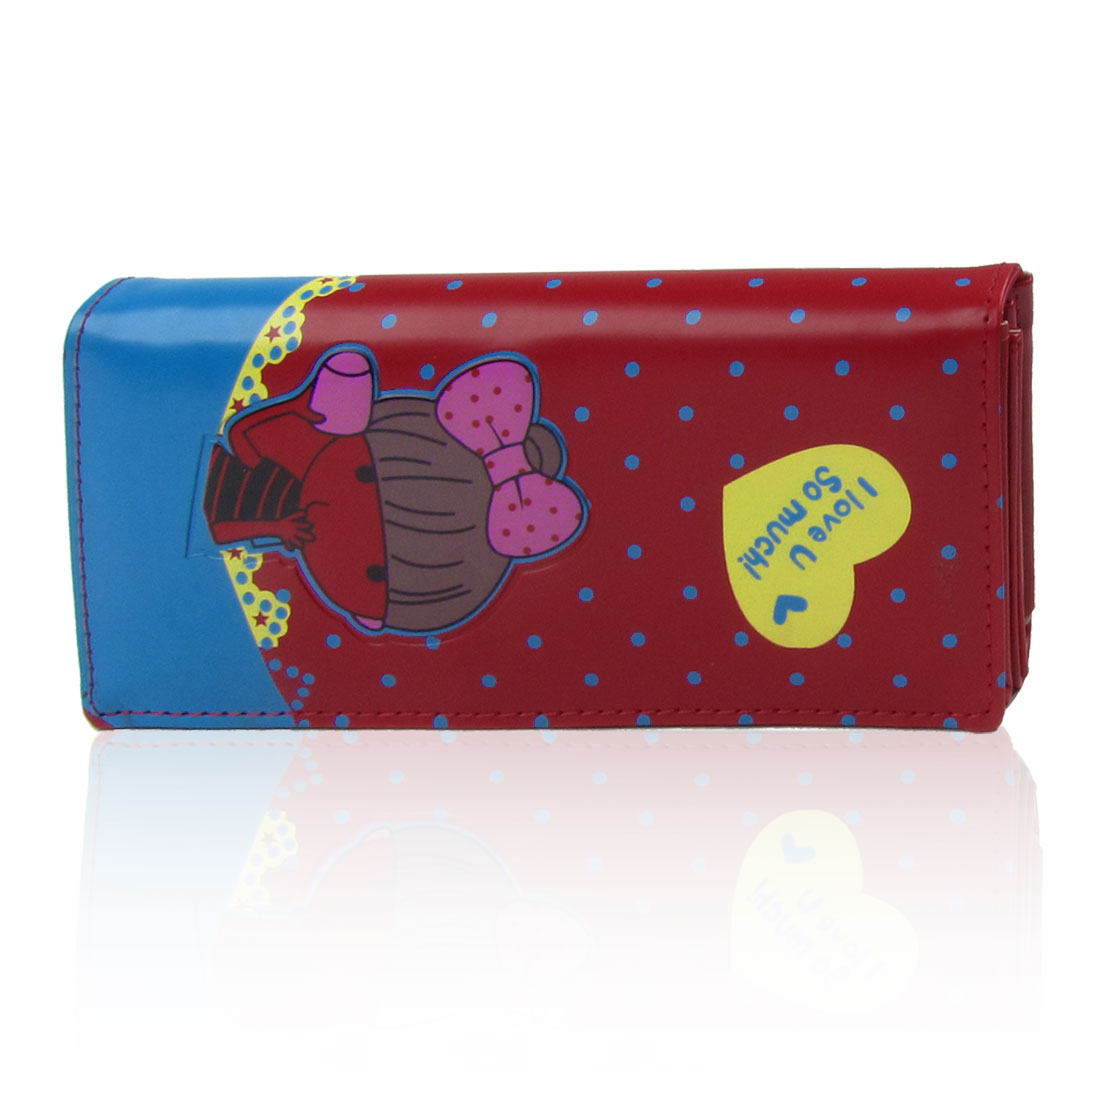 Woman Cartoon Girl Print Magnetic Flap Closure 2 Compartments Purse Red for Lady